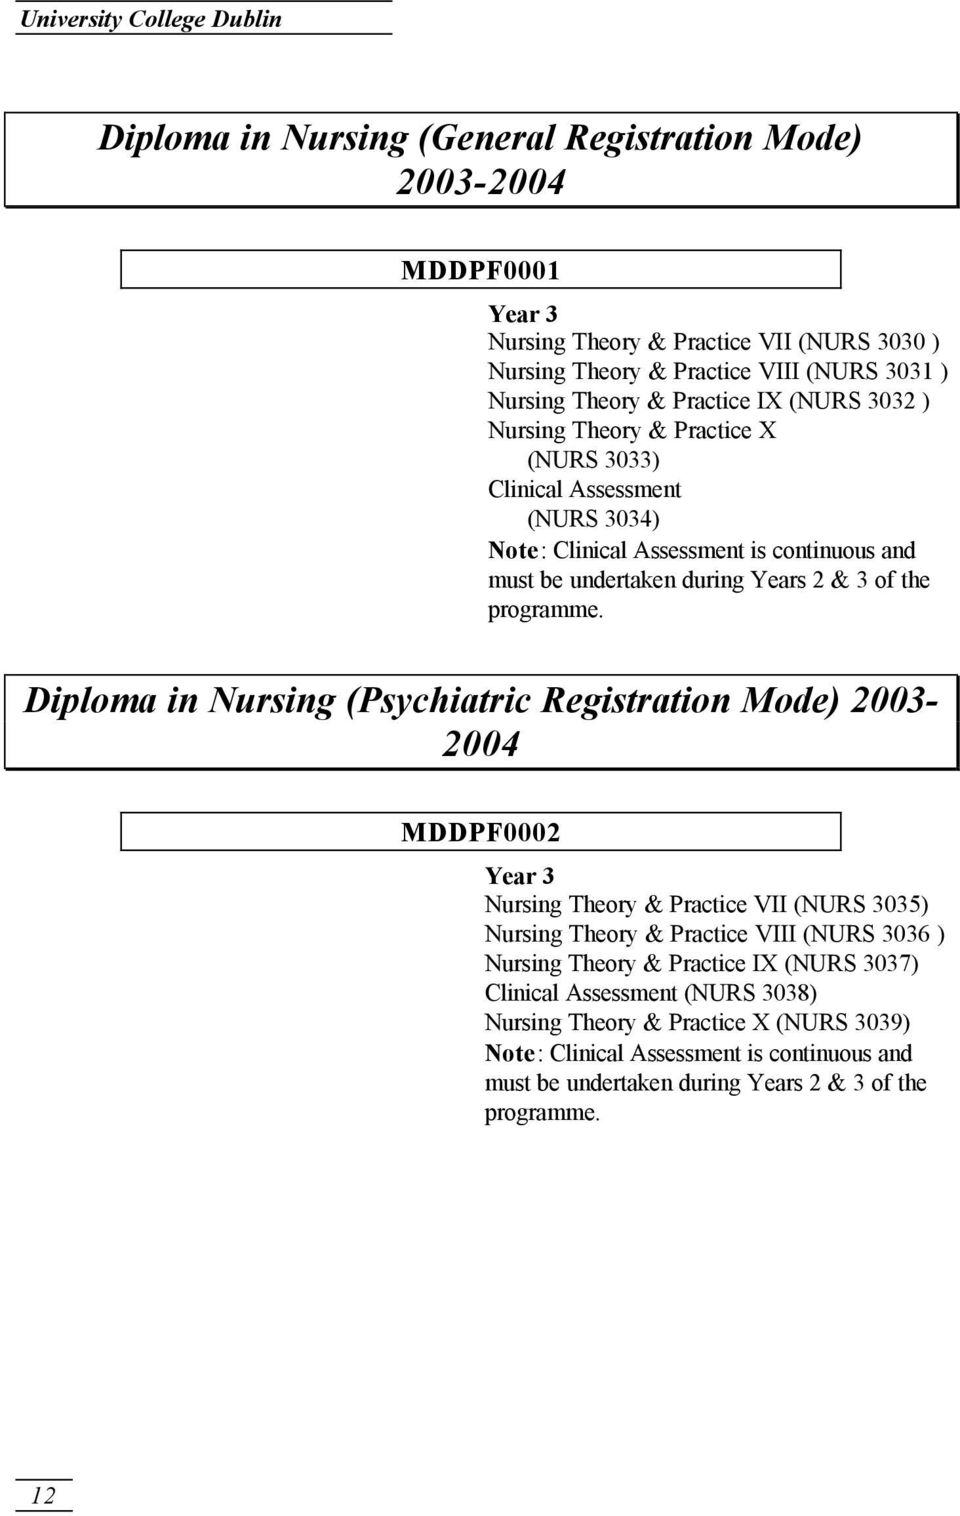 Diploma in Nursing (Psychiatric Registration Mode) 2003-2004 MDDPF0002 Year 3 Nursing Theory & Practice VII (NURS 3035) Nursing Theory & Practice VIII (NURS 3036 ) Nursing Theory &